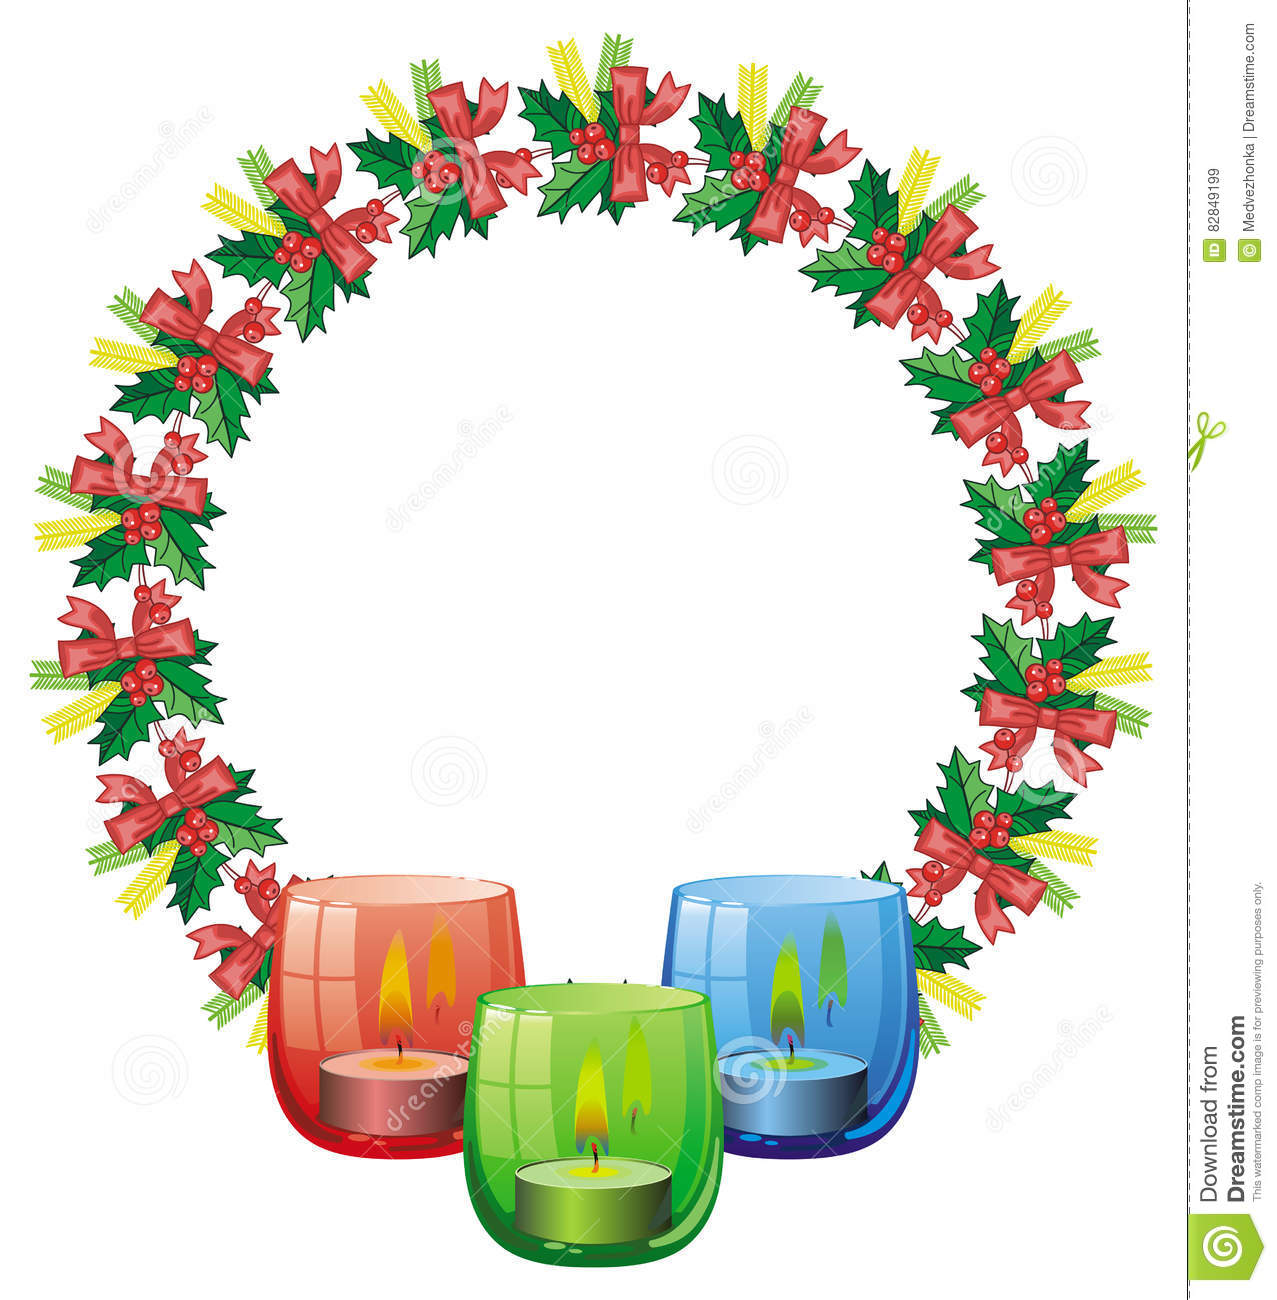 Round Frame In Shape Of Christmas Garland And Lighted Candle In.